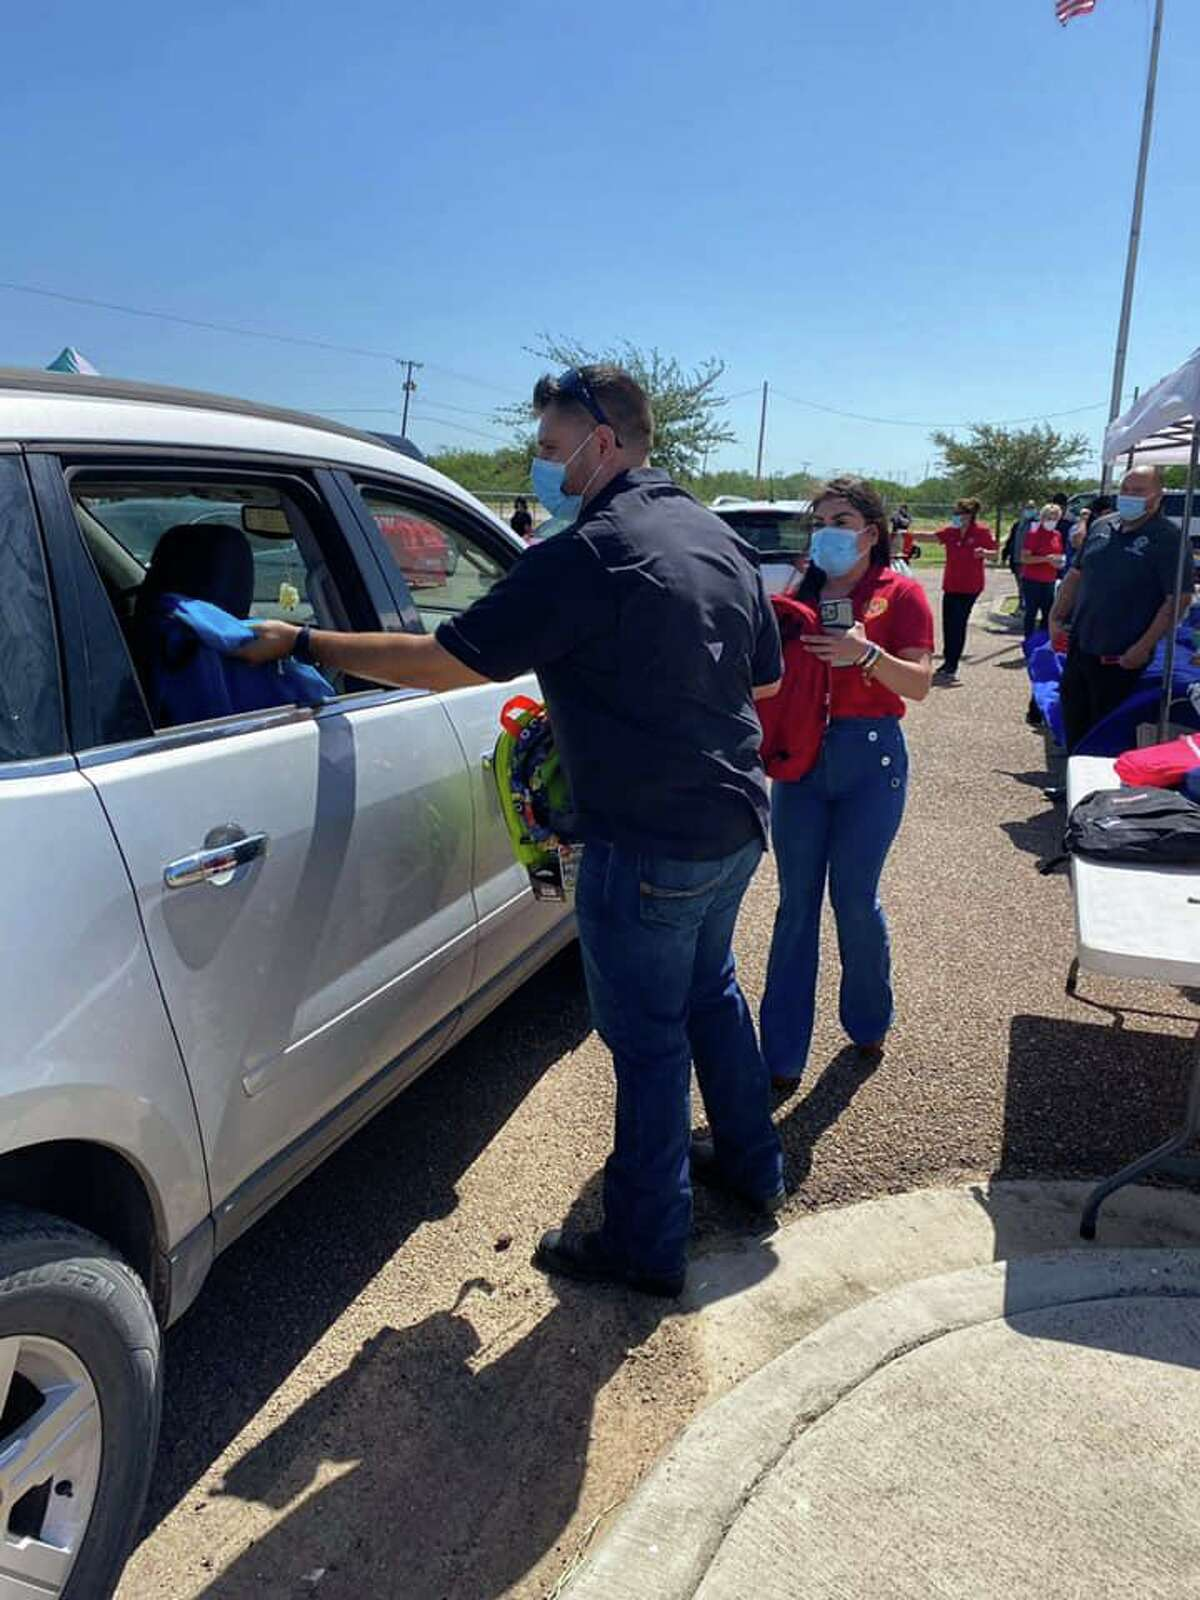 Webb County Commissioner Pct.1 Jesse Gonzalez helped distribute donated school supplies to students in south Laredo for the sixth straight year.